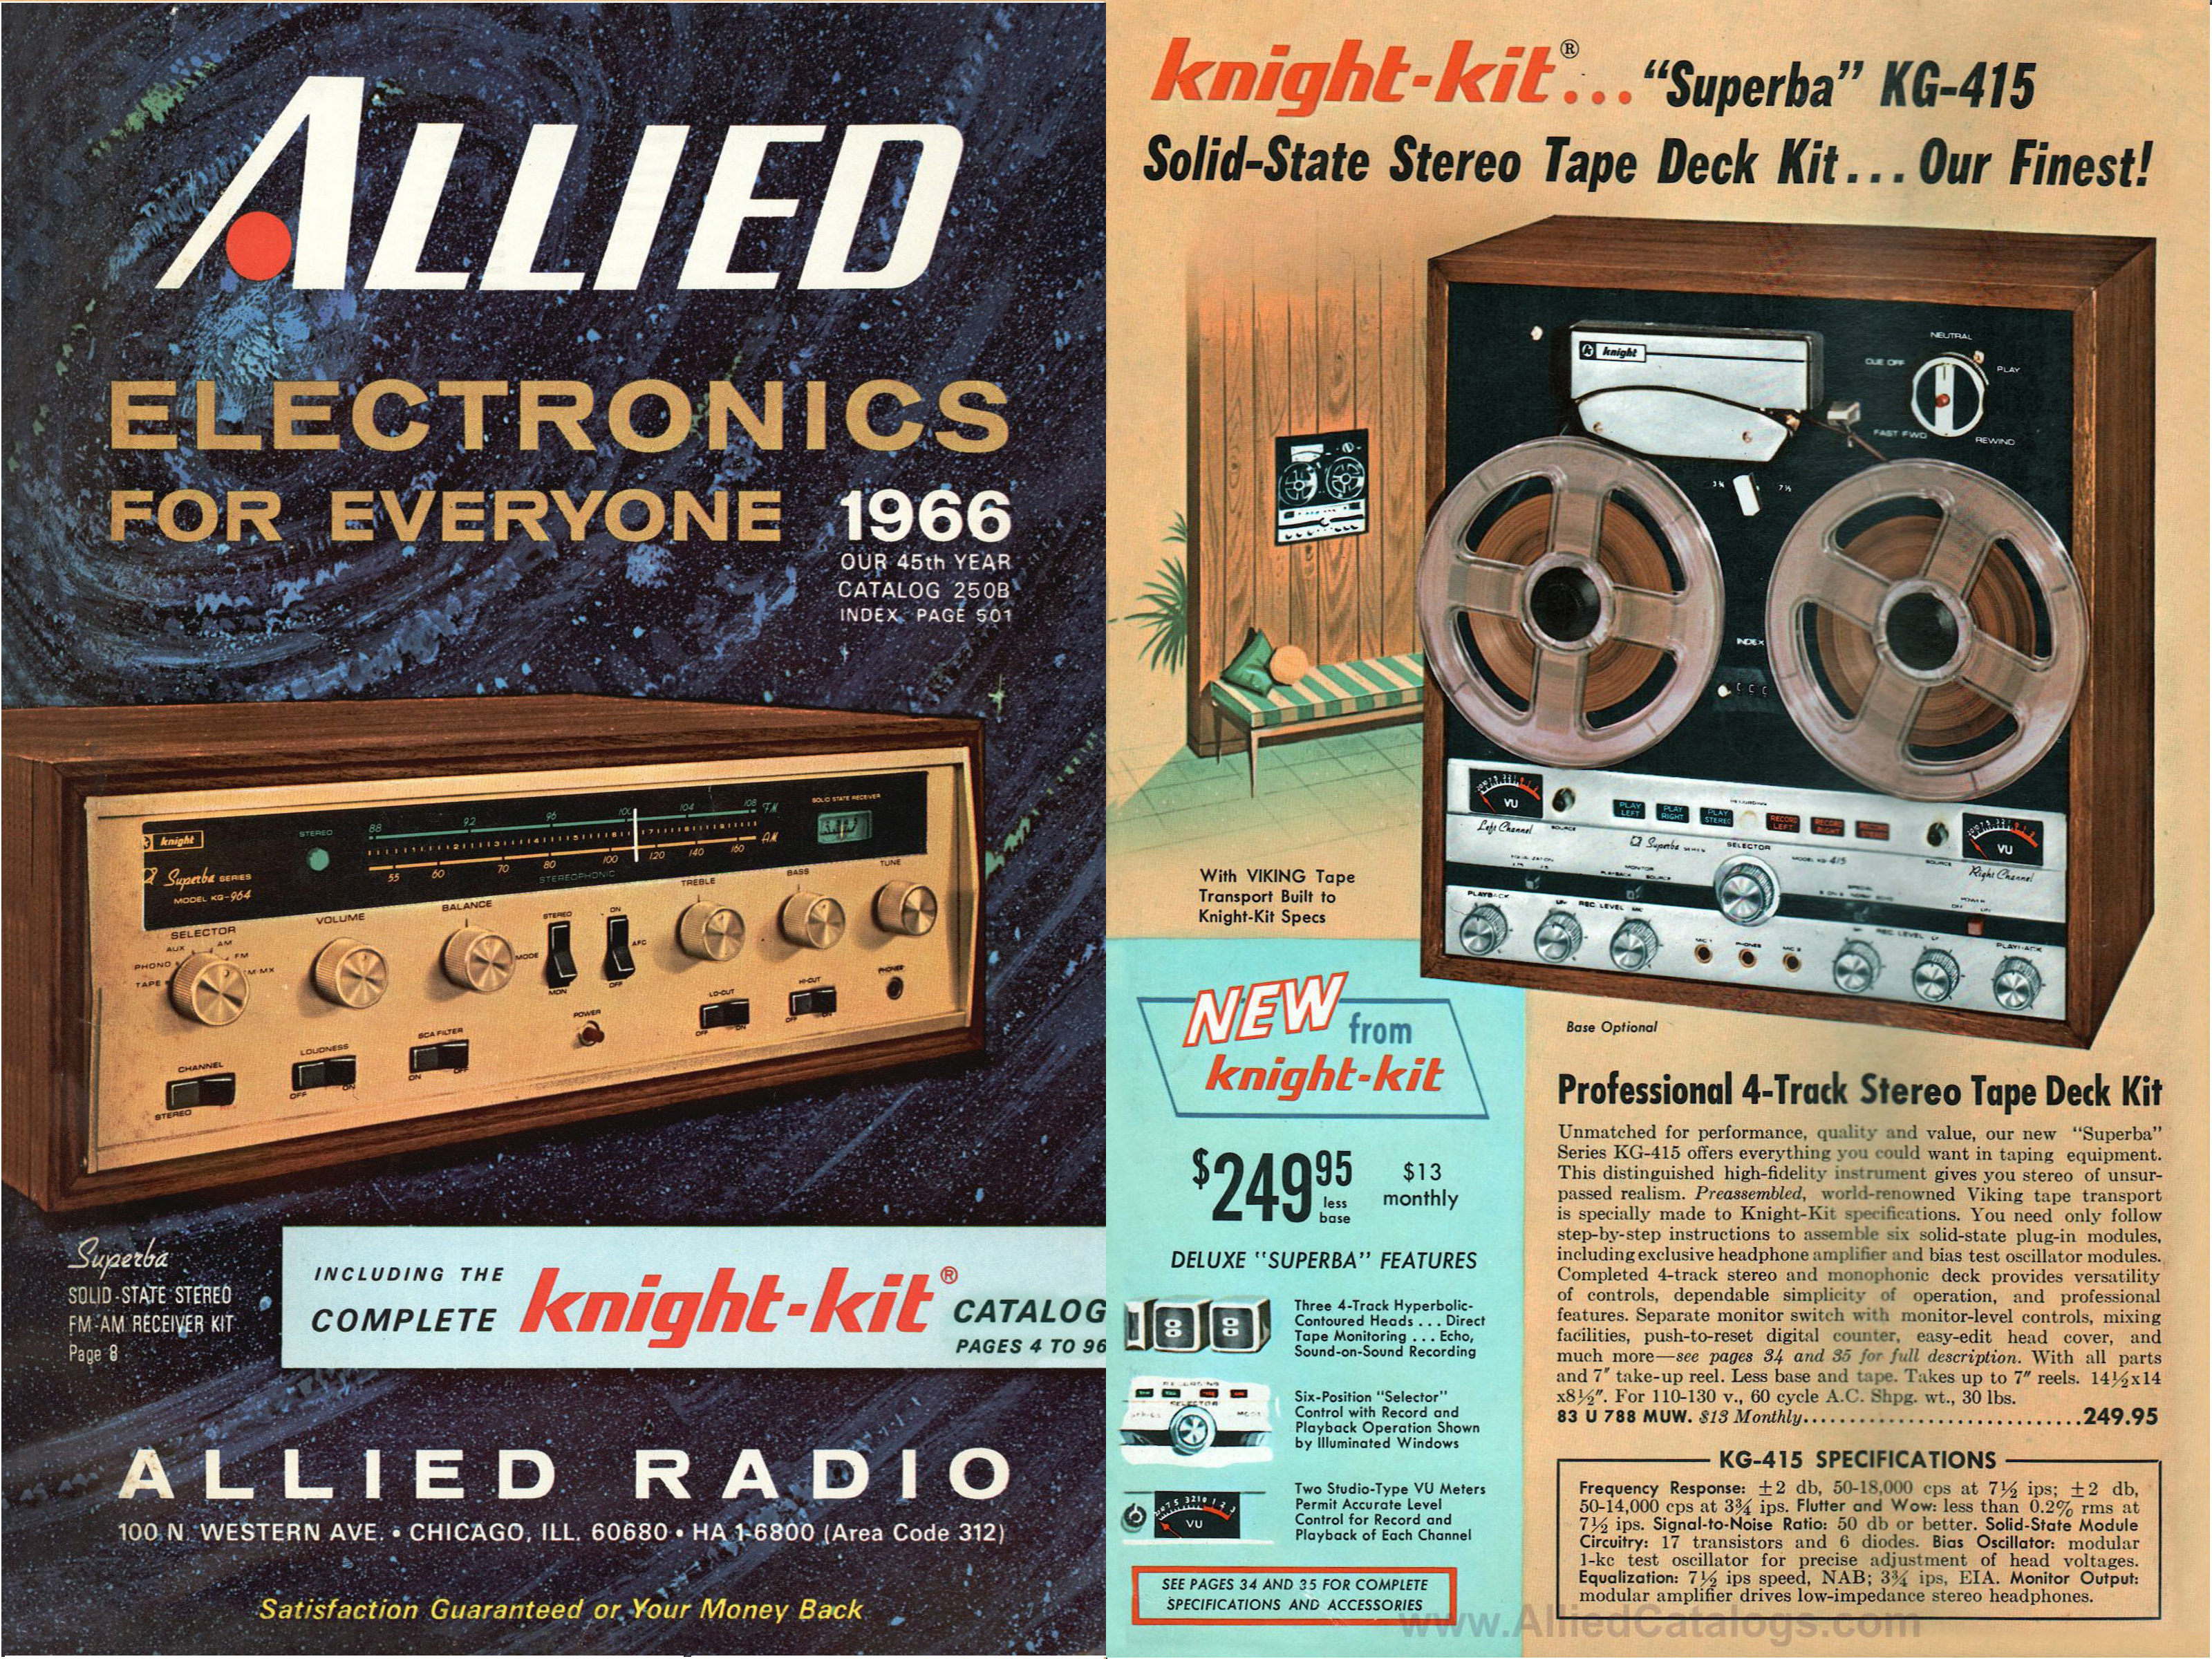 Allied Radio—1928-1970